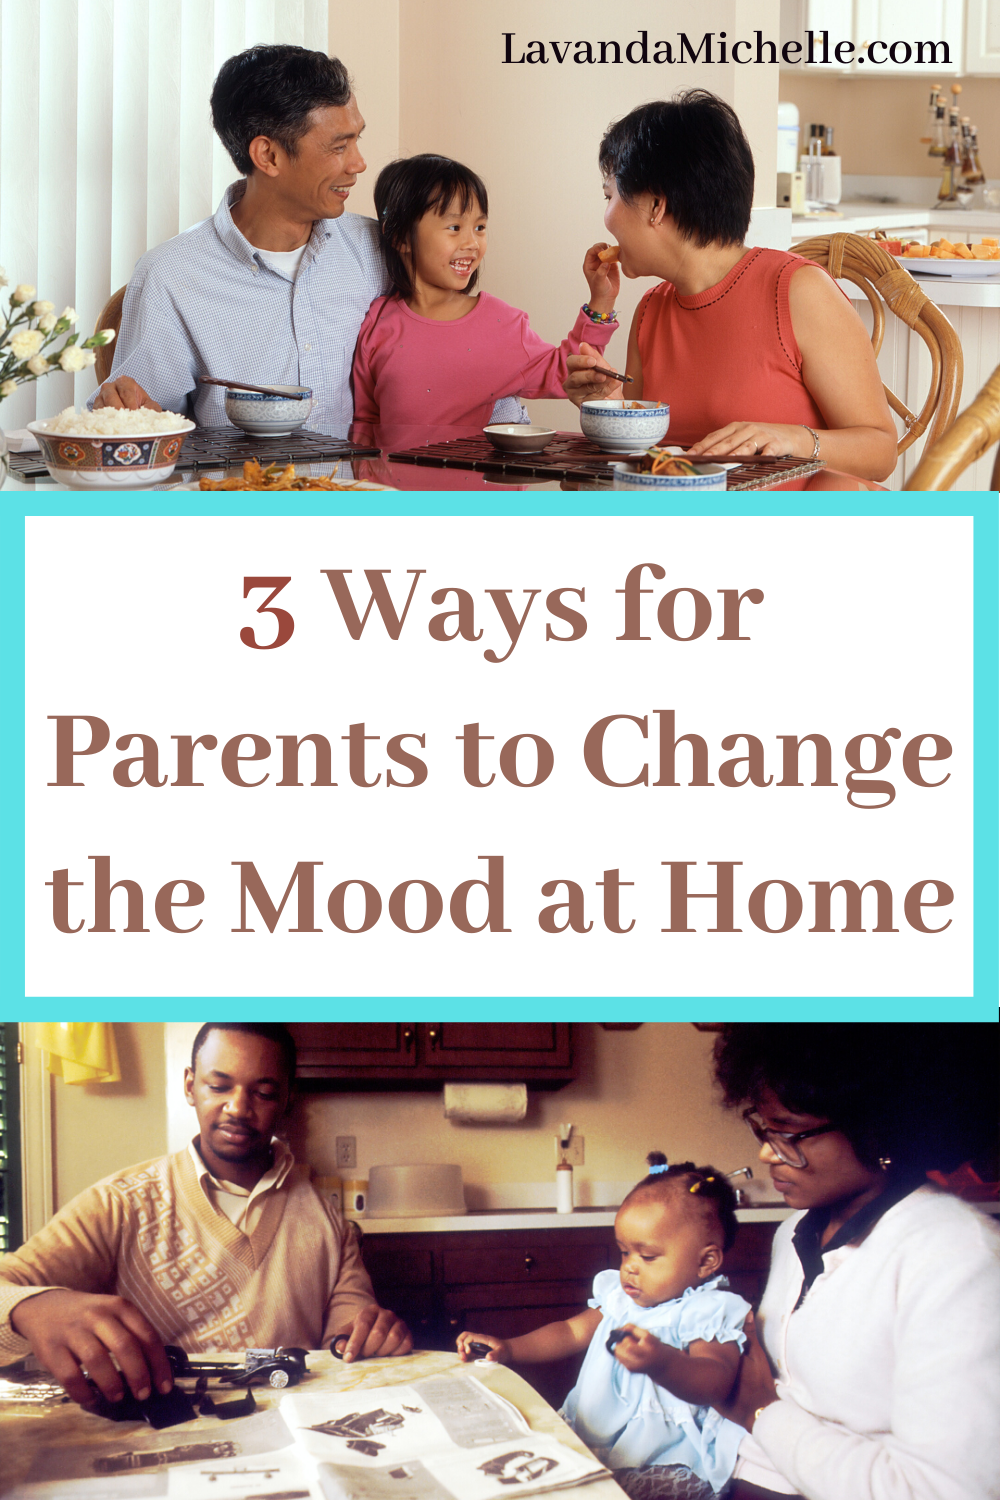 3 Ways for Parents to Change the Mood at Home